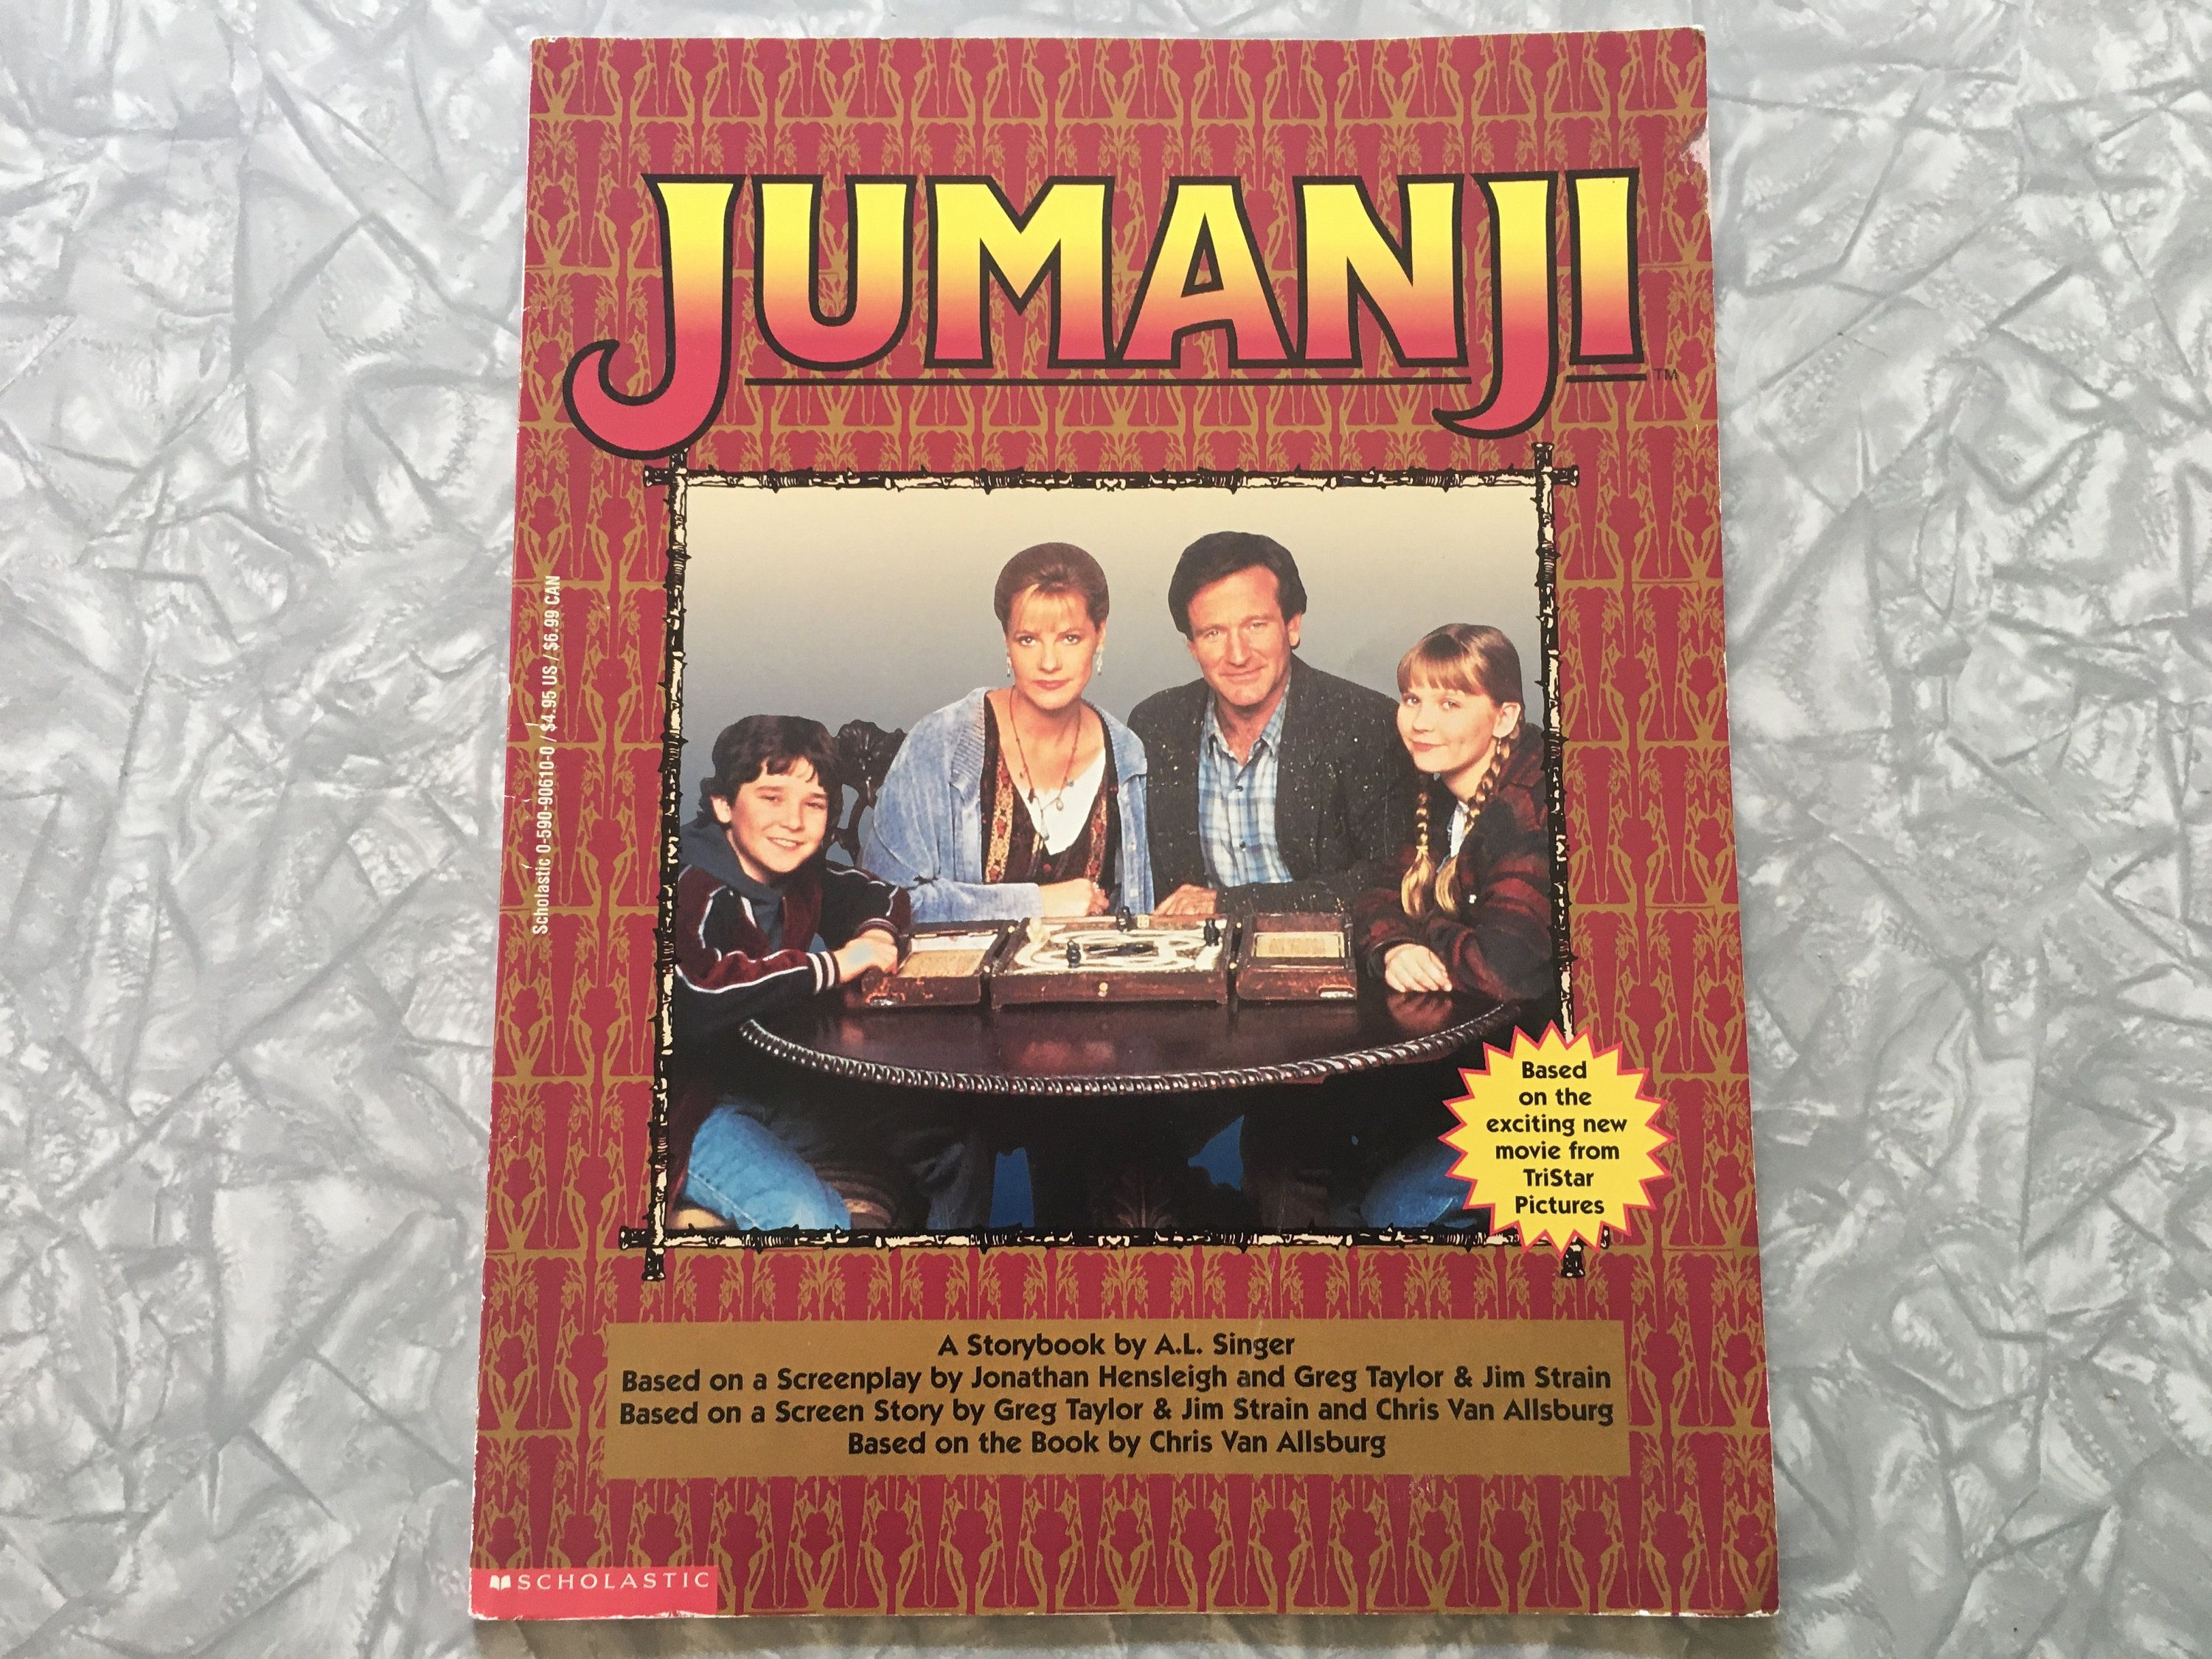 1995 jumanji storybook movie picture book etsy in 2020